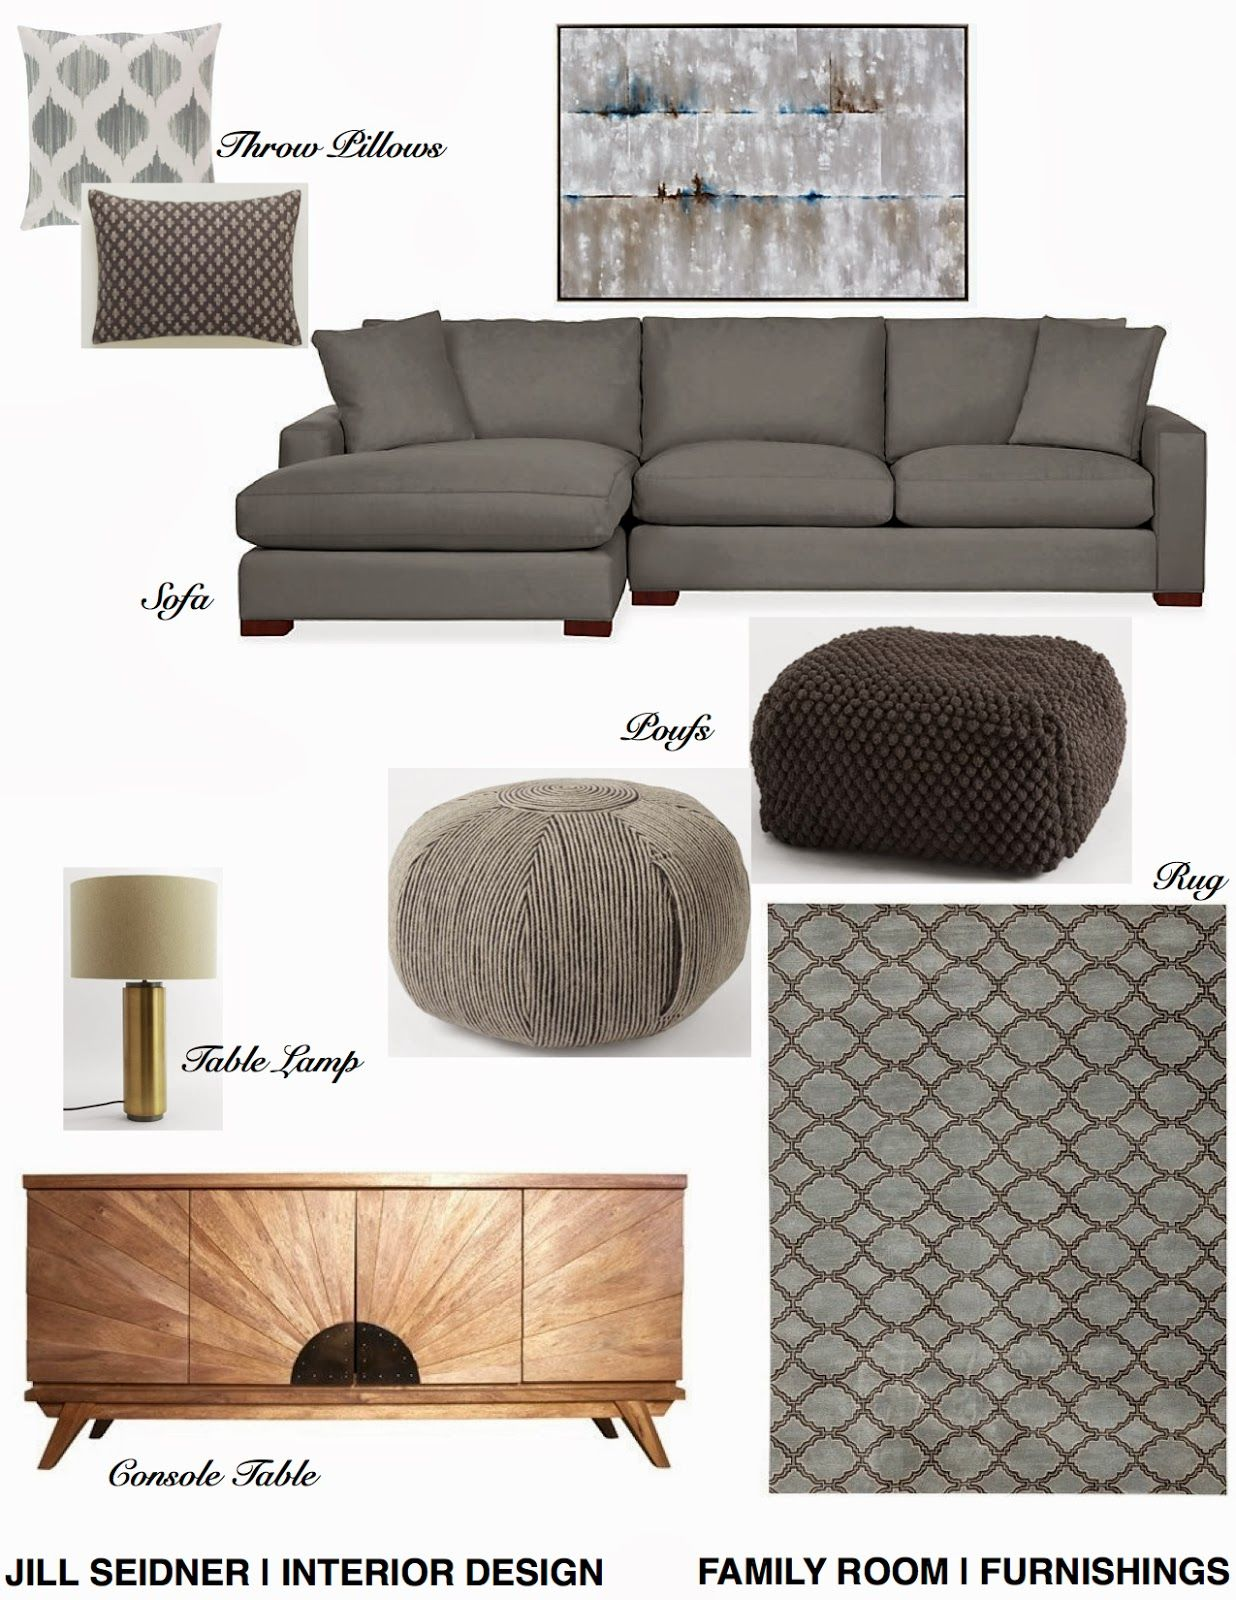 Looking for interior design help  offer  complete room via online anyone anywhere which includes furniture floor also rh pinterest